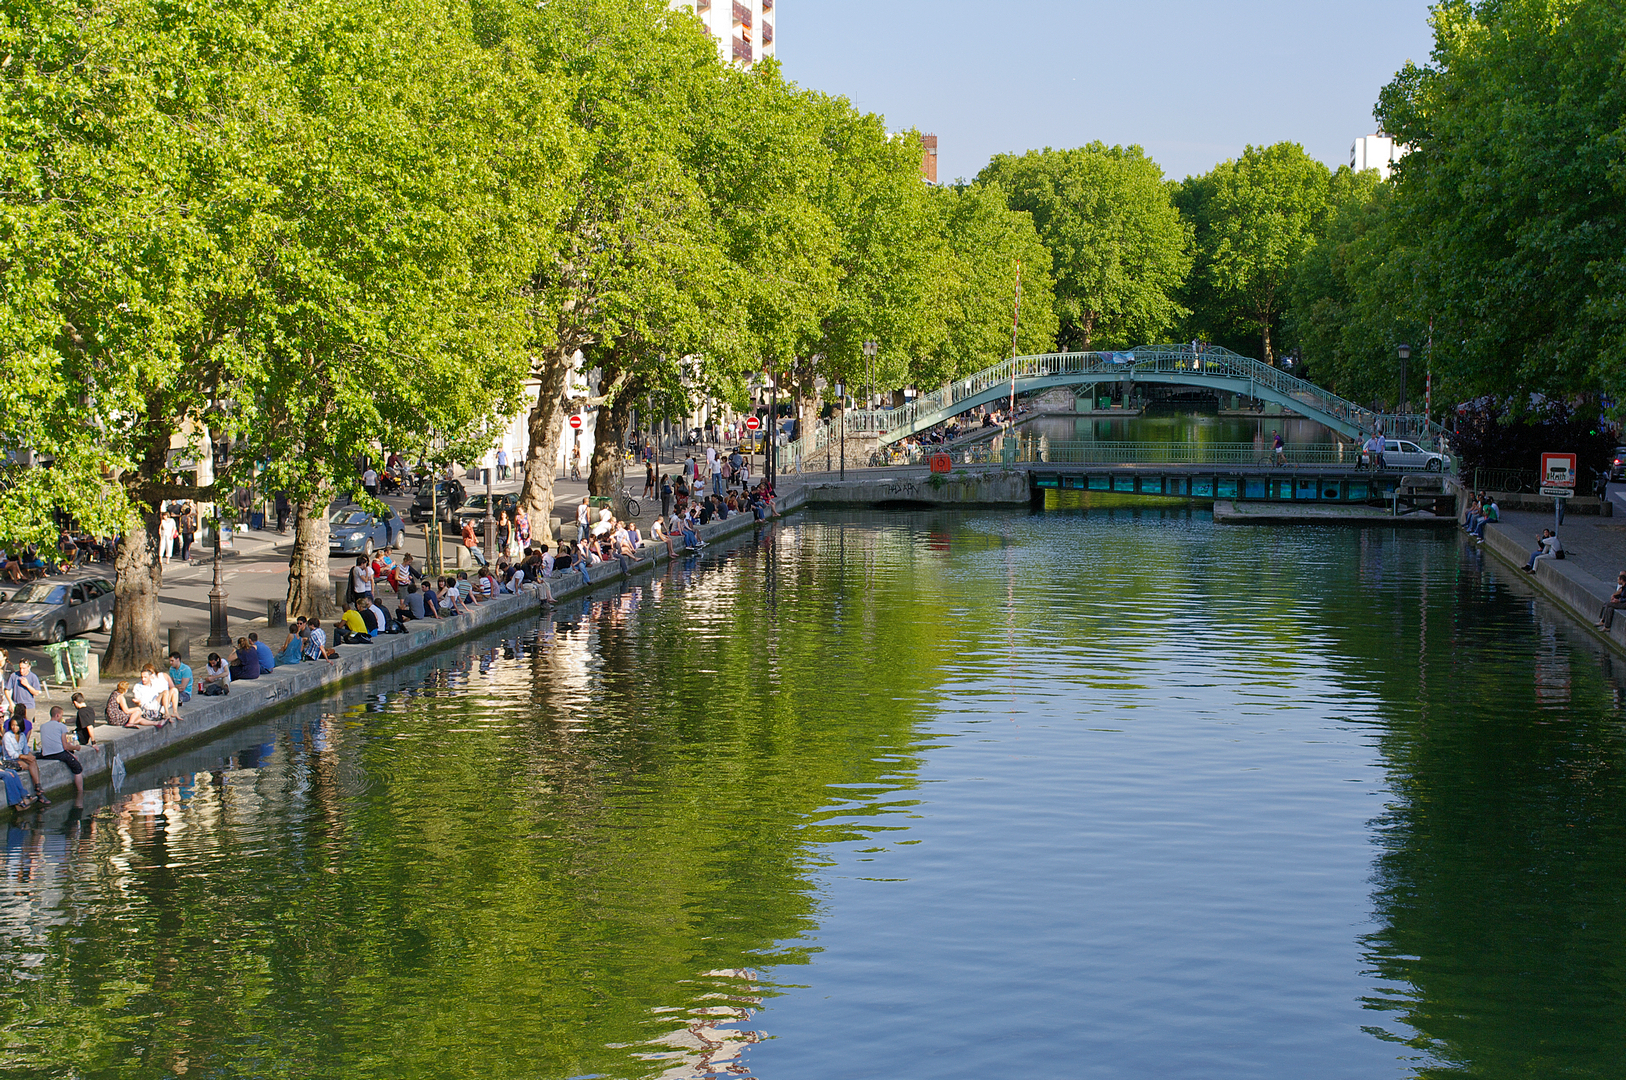 Canal Saint-Martin, Ourcq and Villette